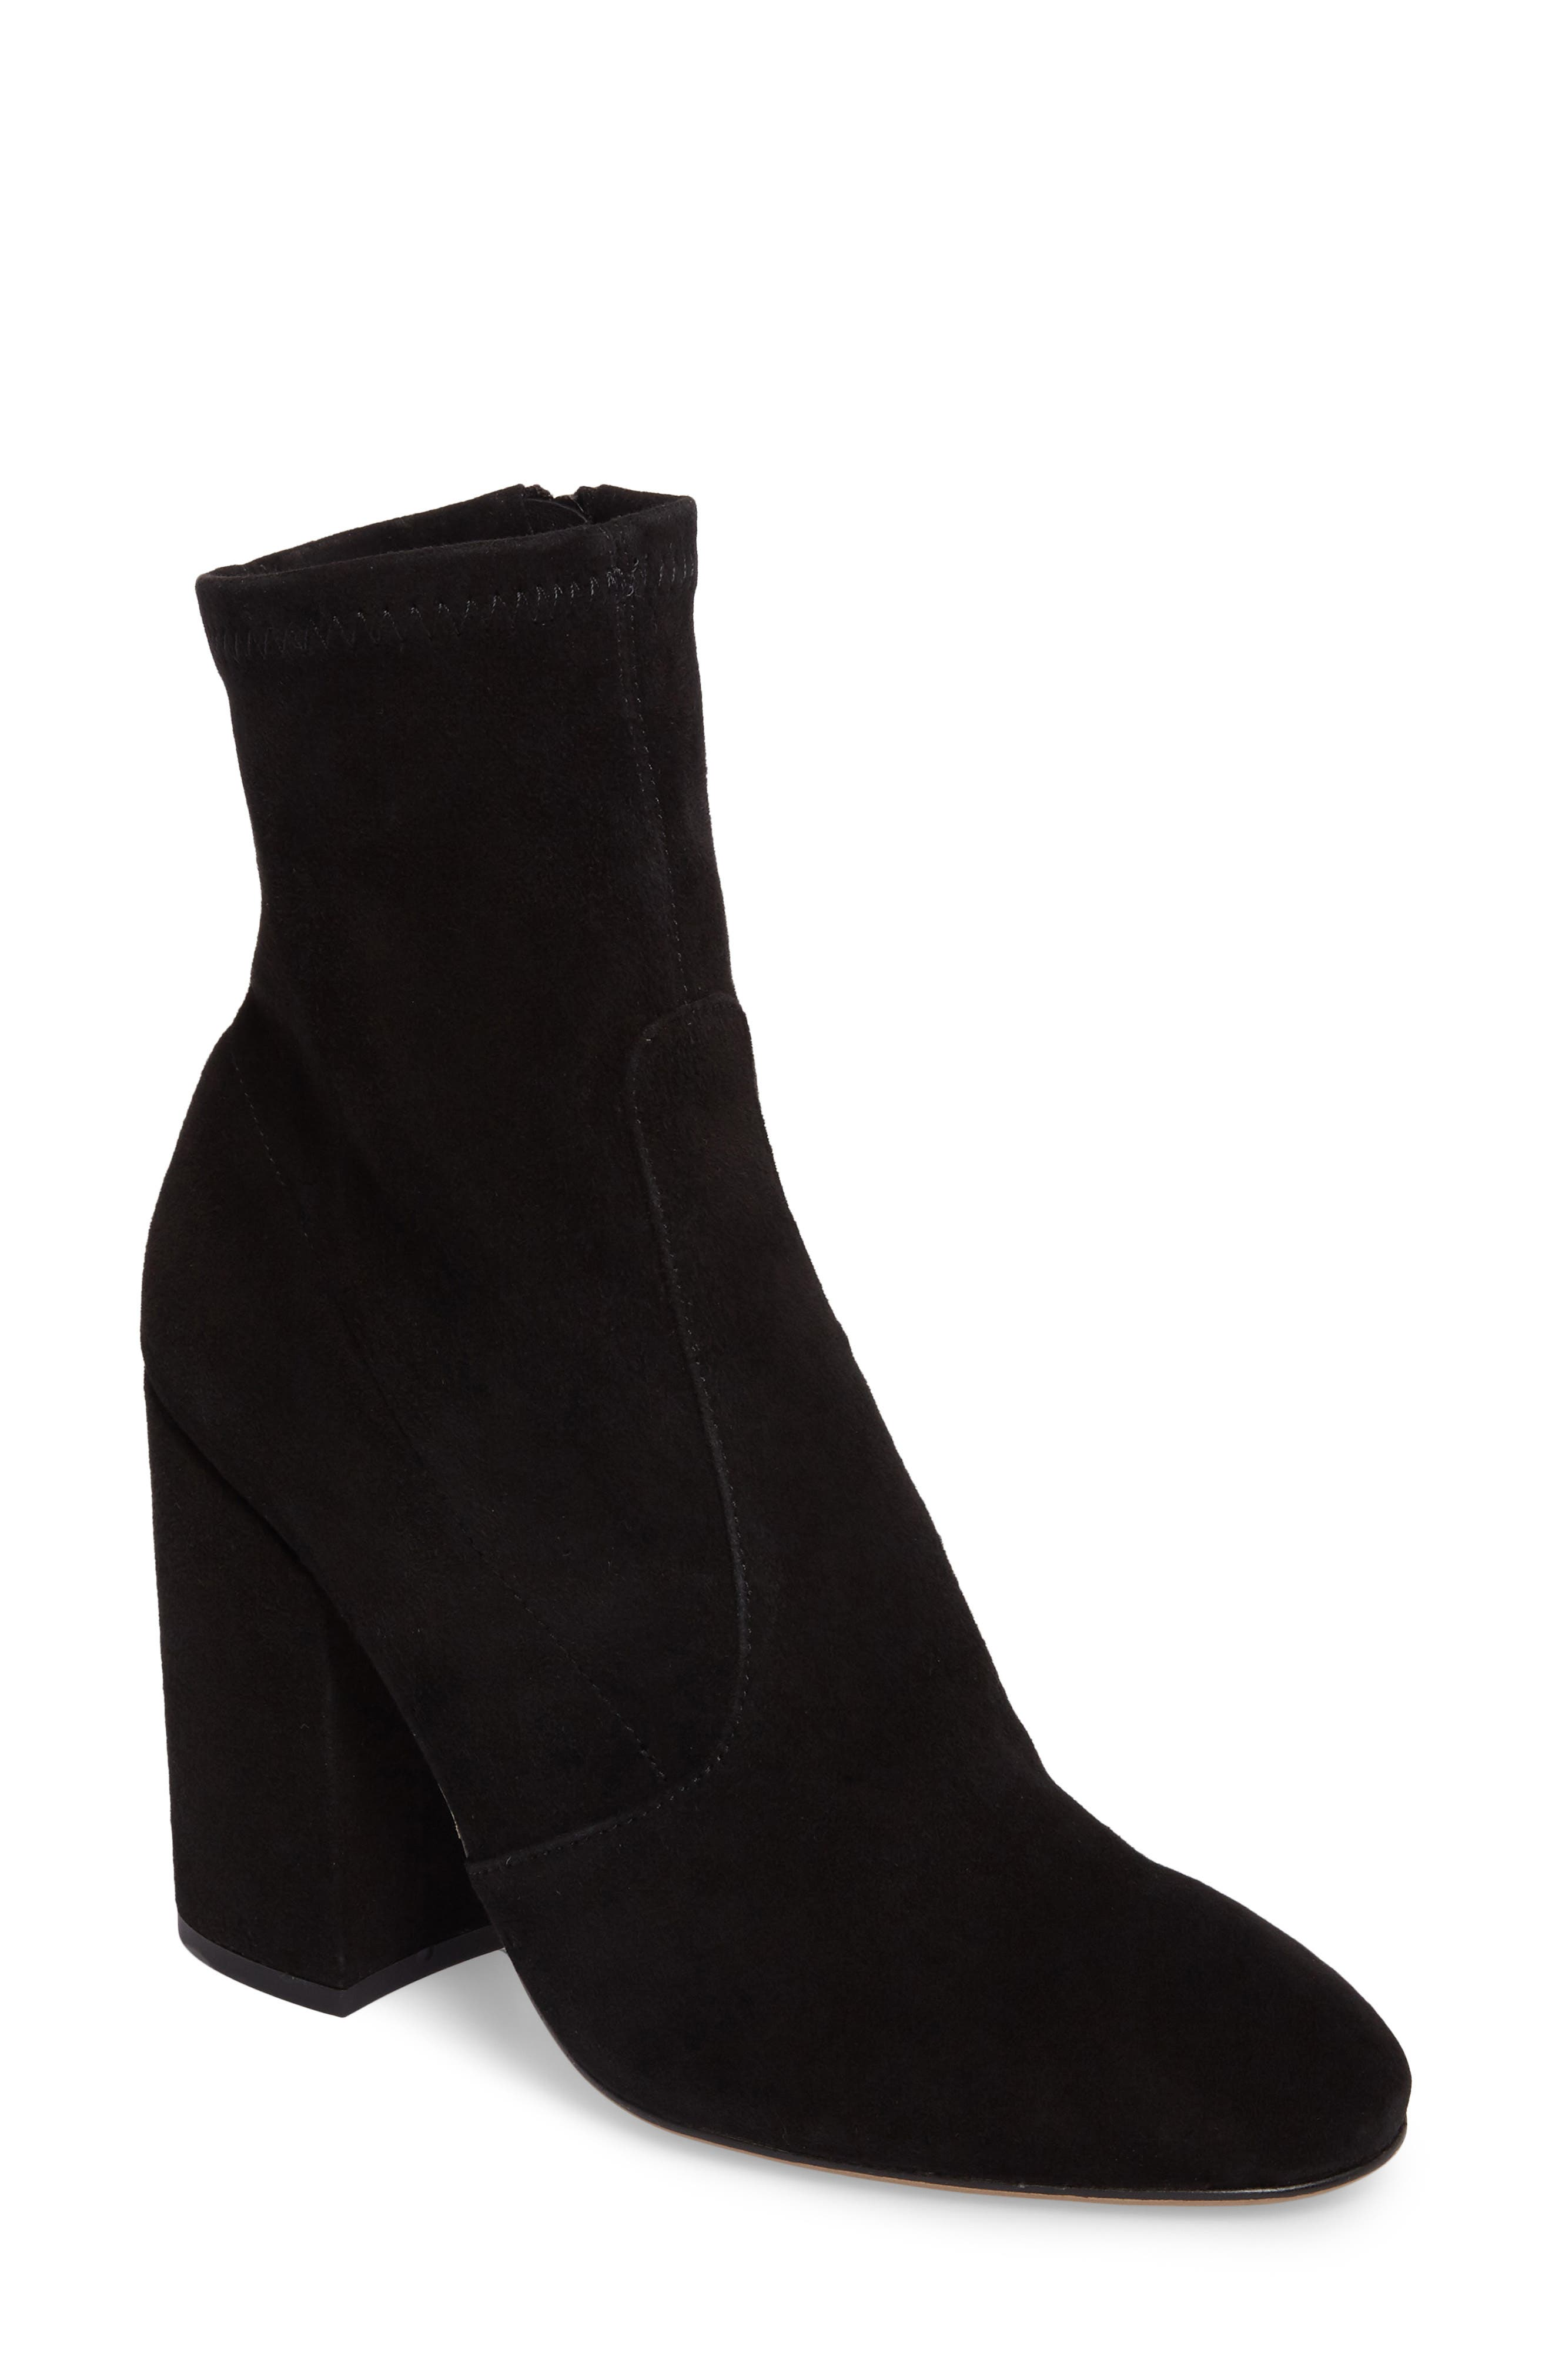 Alaia Block Heel Bootie,                         Main,                         color, Black Suede